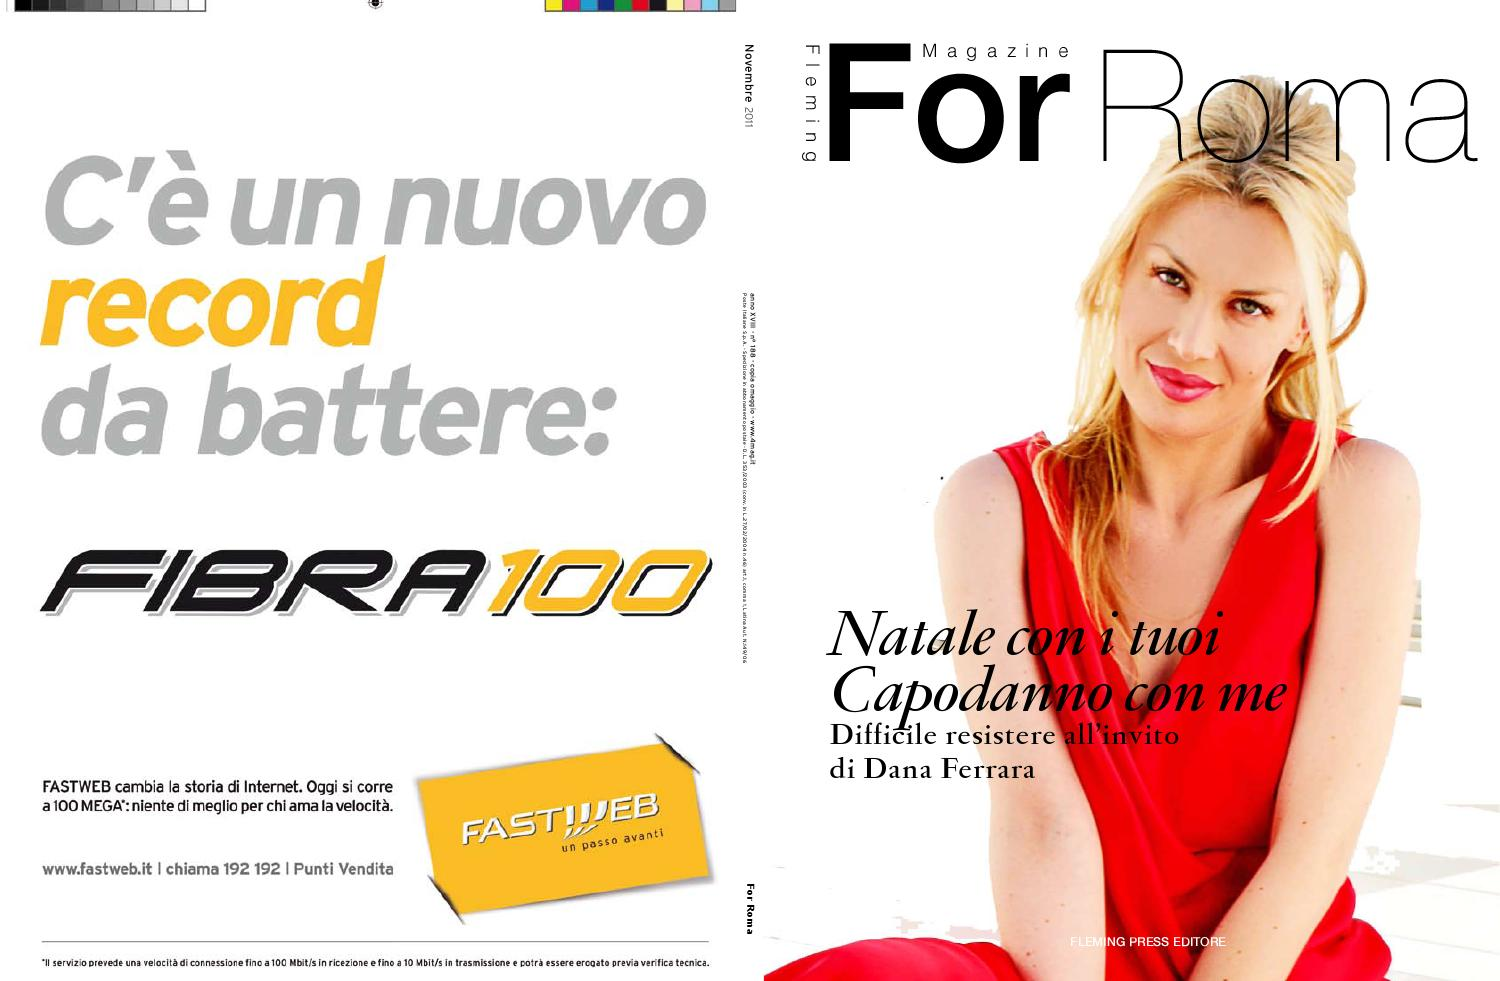 For Roma dicembre 4mag by 4mag magazine - issuu 805c6735241